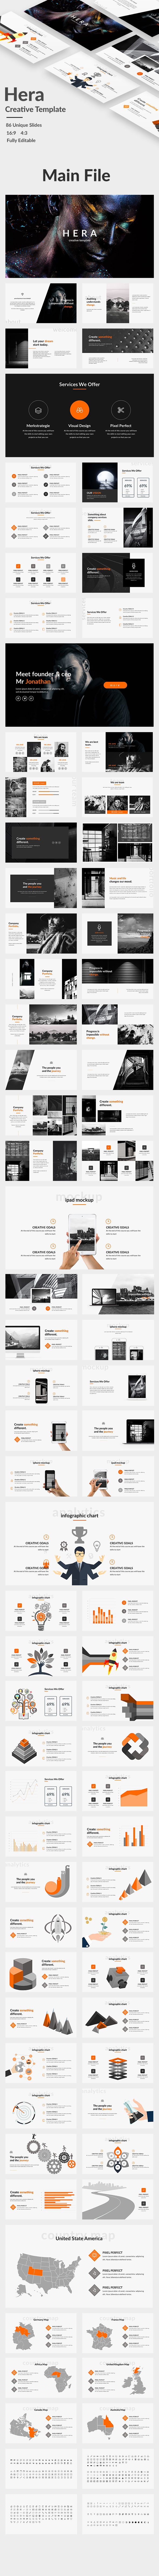 Hera Creative Keynote Template - Creative Keynote Templates